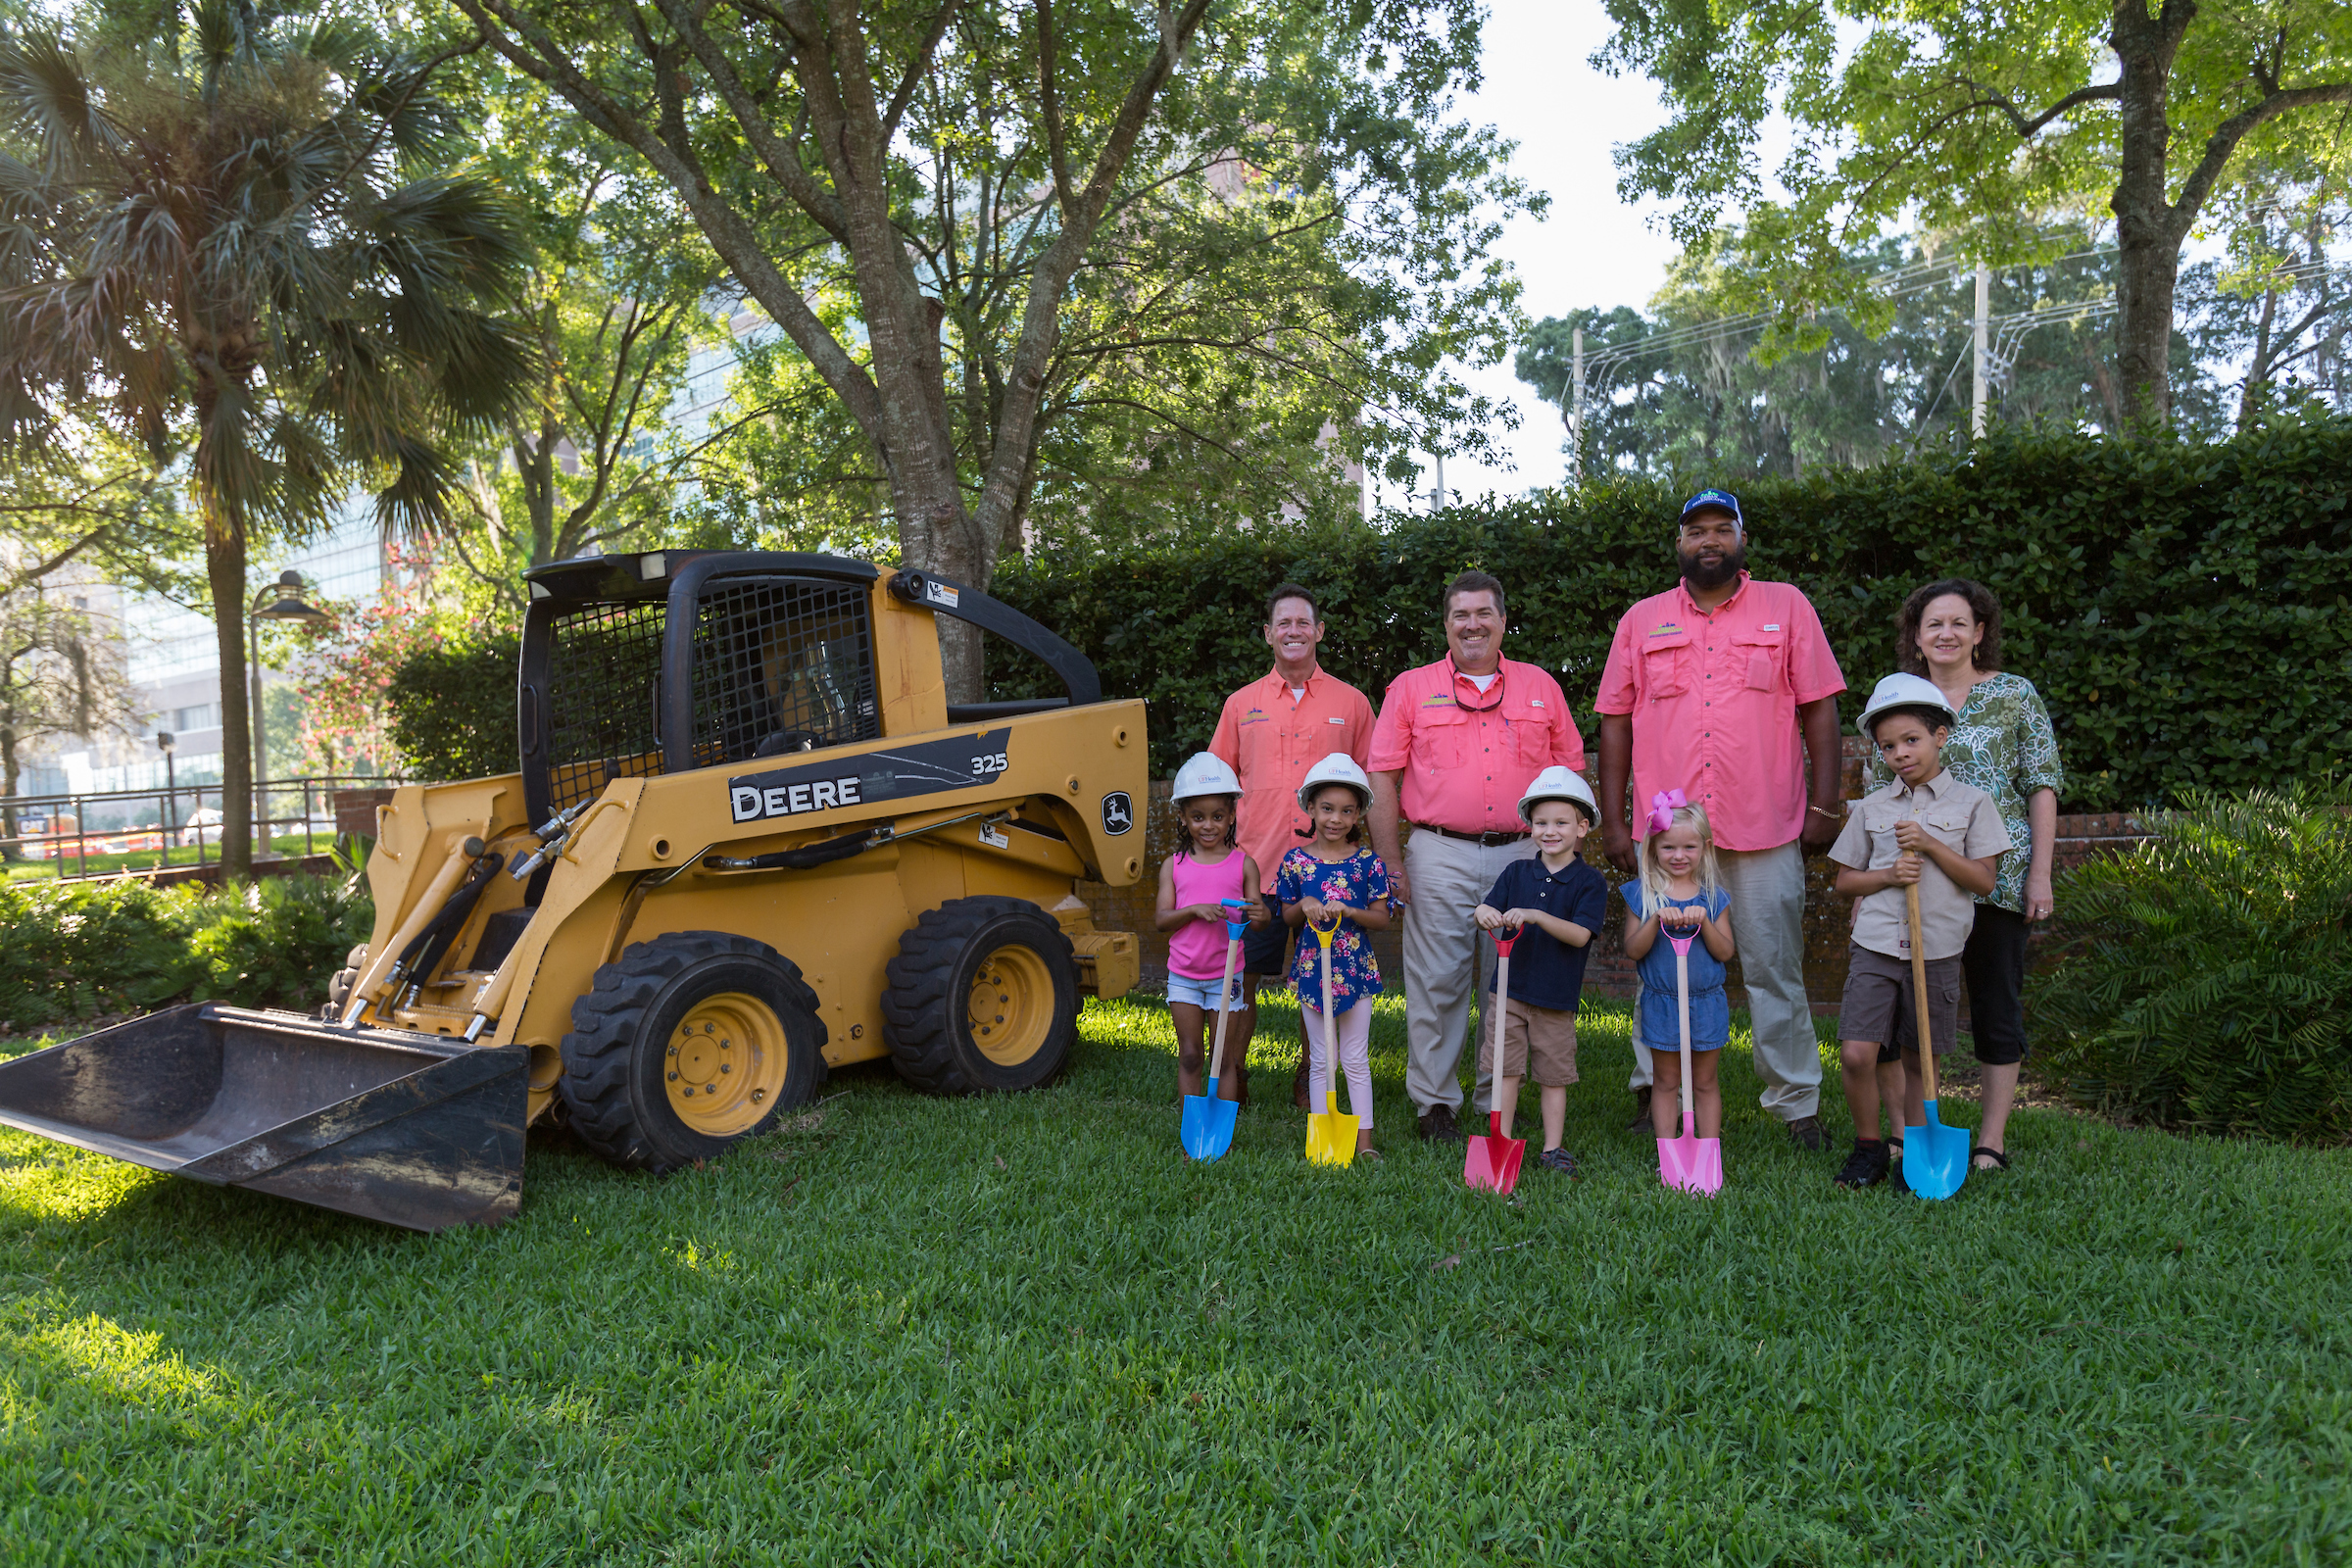 Children holding shovels and wearing hard hats in a garden with a bulldozer next to them and adults standing behind them.